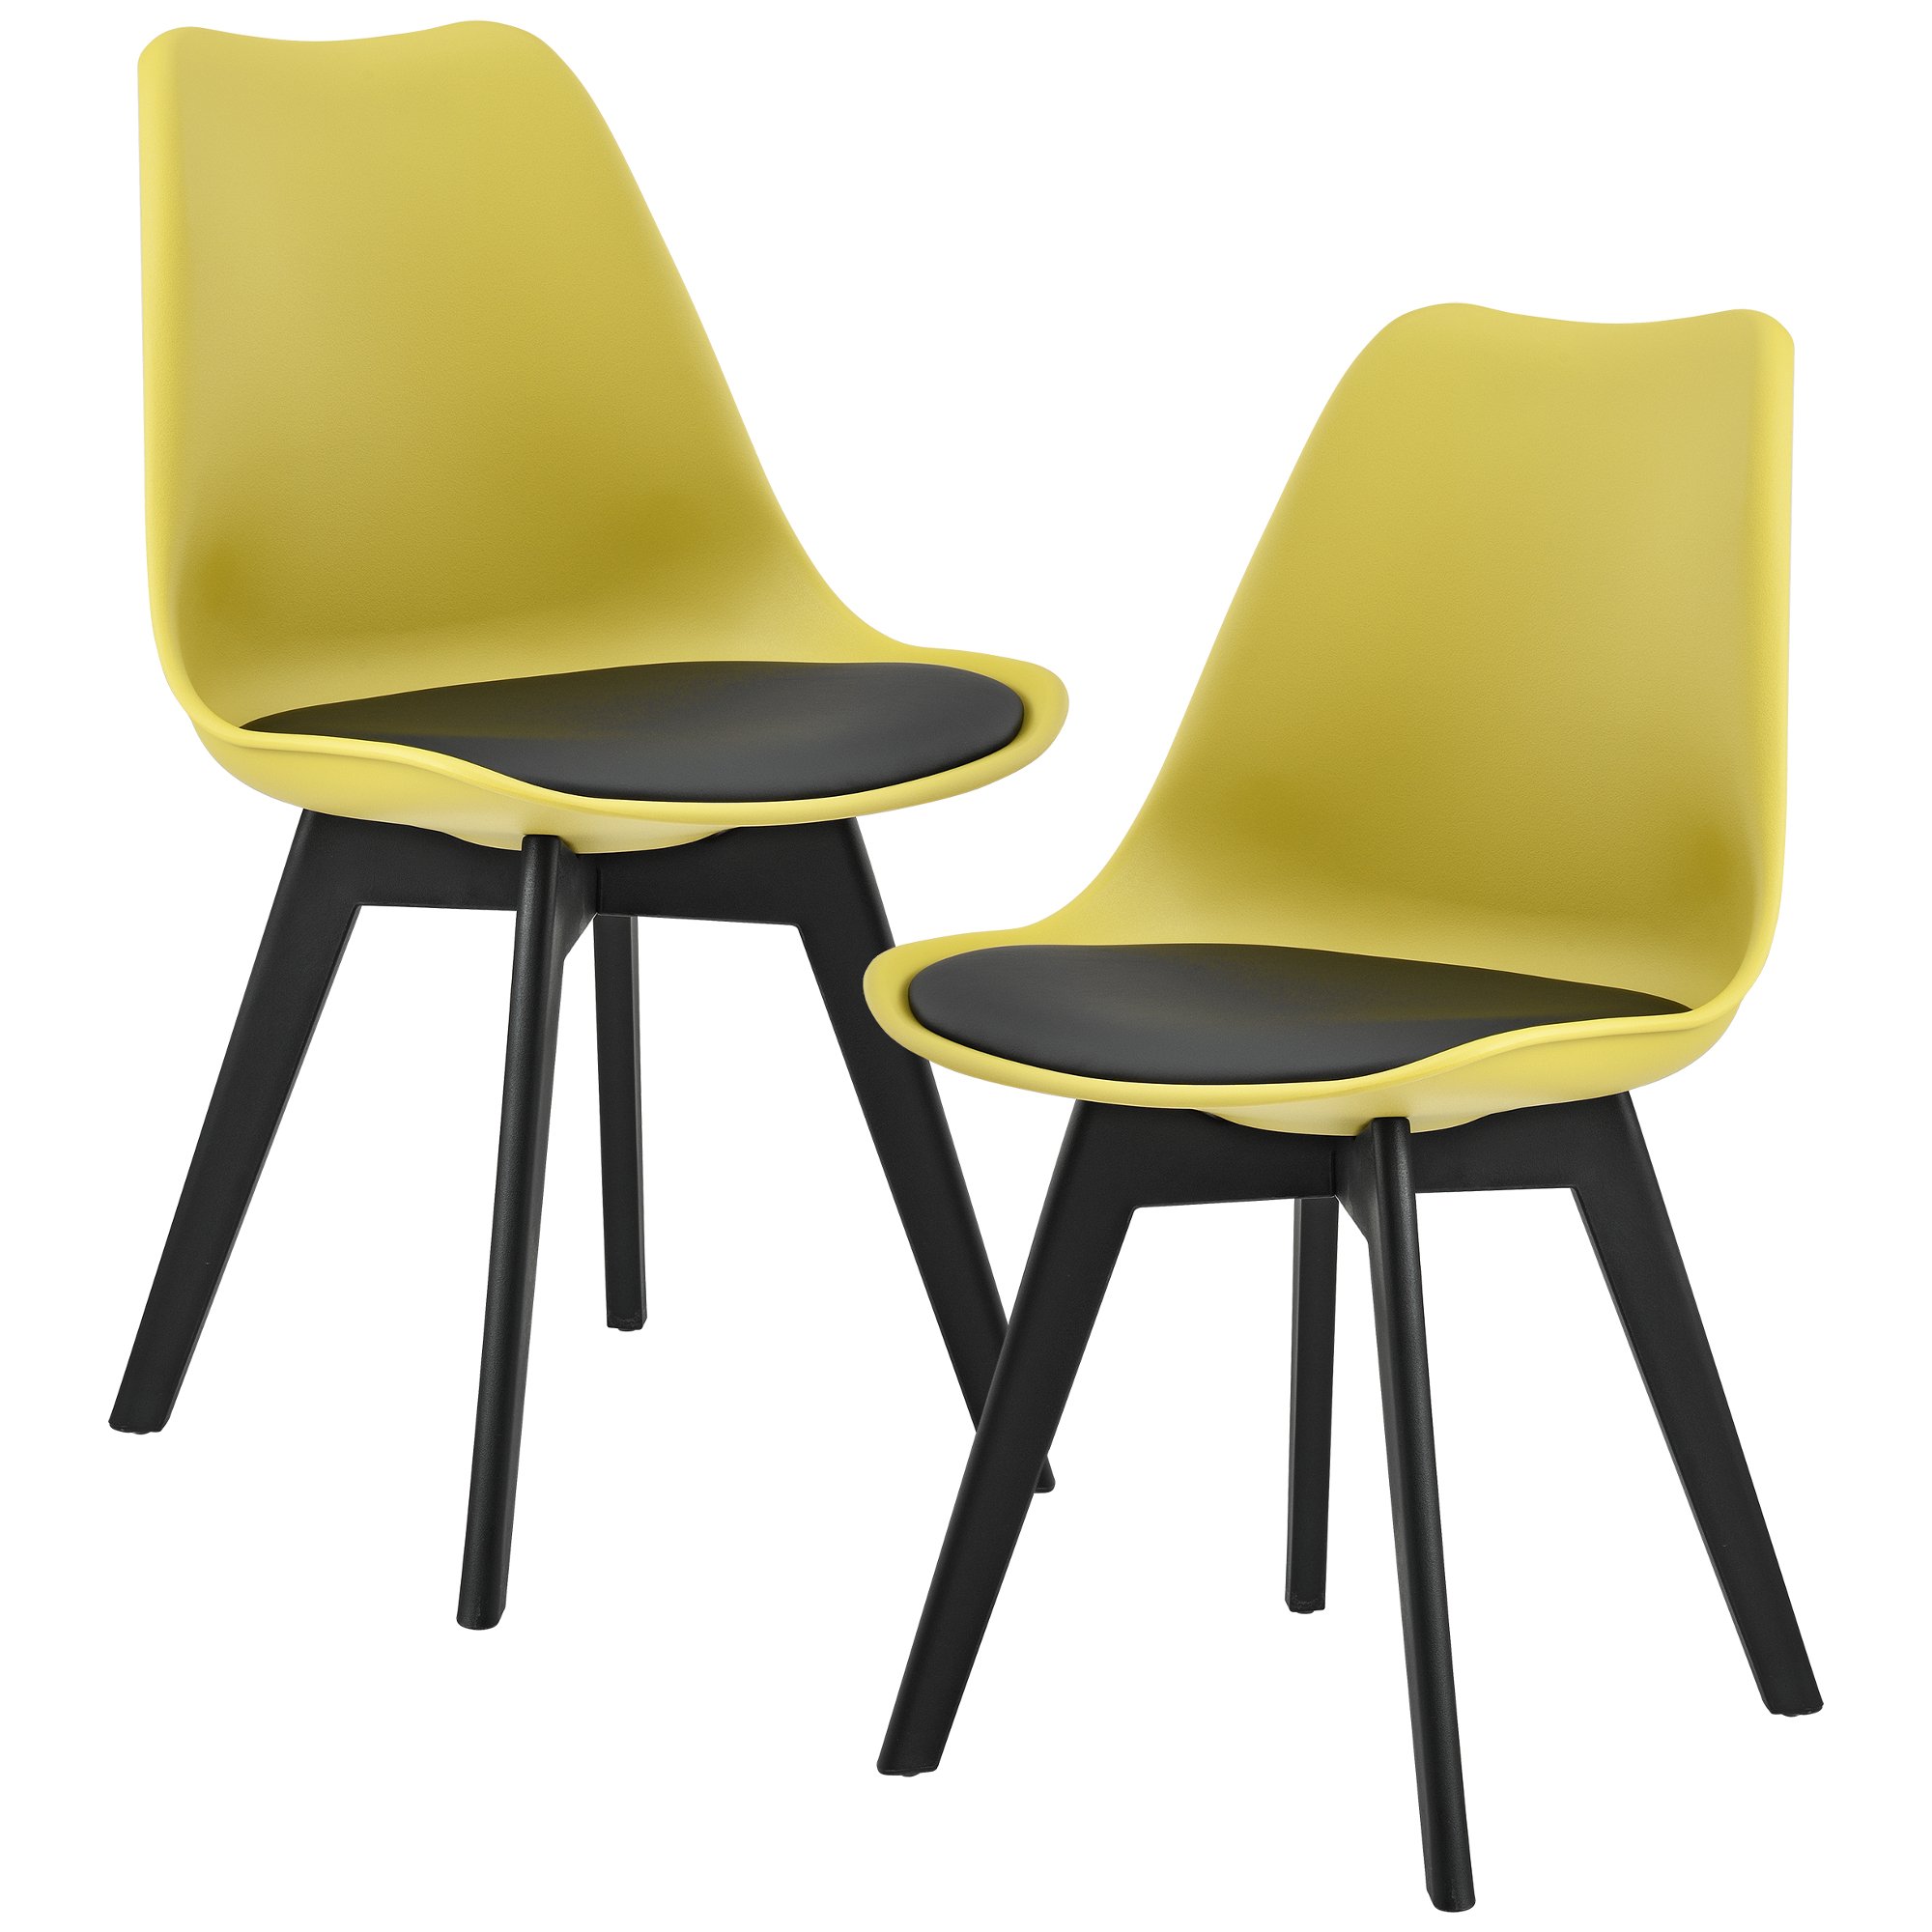 2 x design chairs dining room mustard plastic for Stuhl design bilder